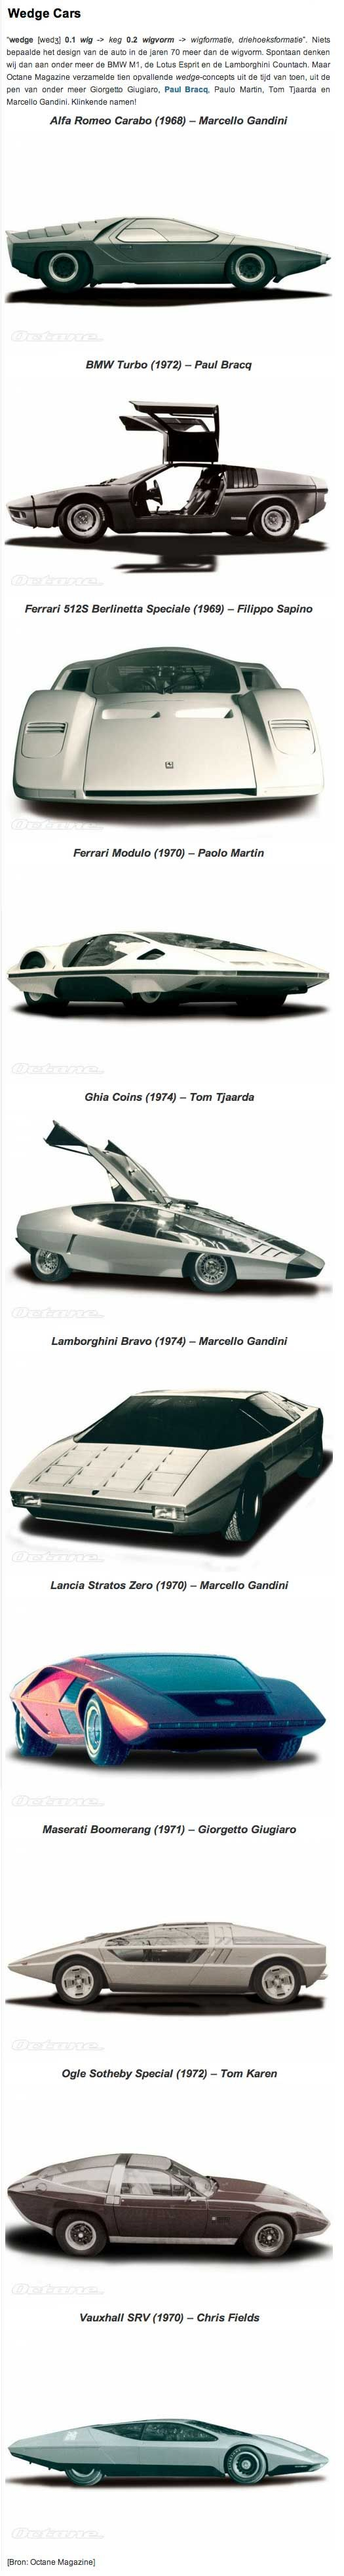 826 best Concepts of a Future Past images on Pinterest